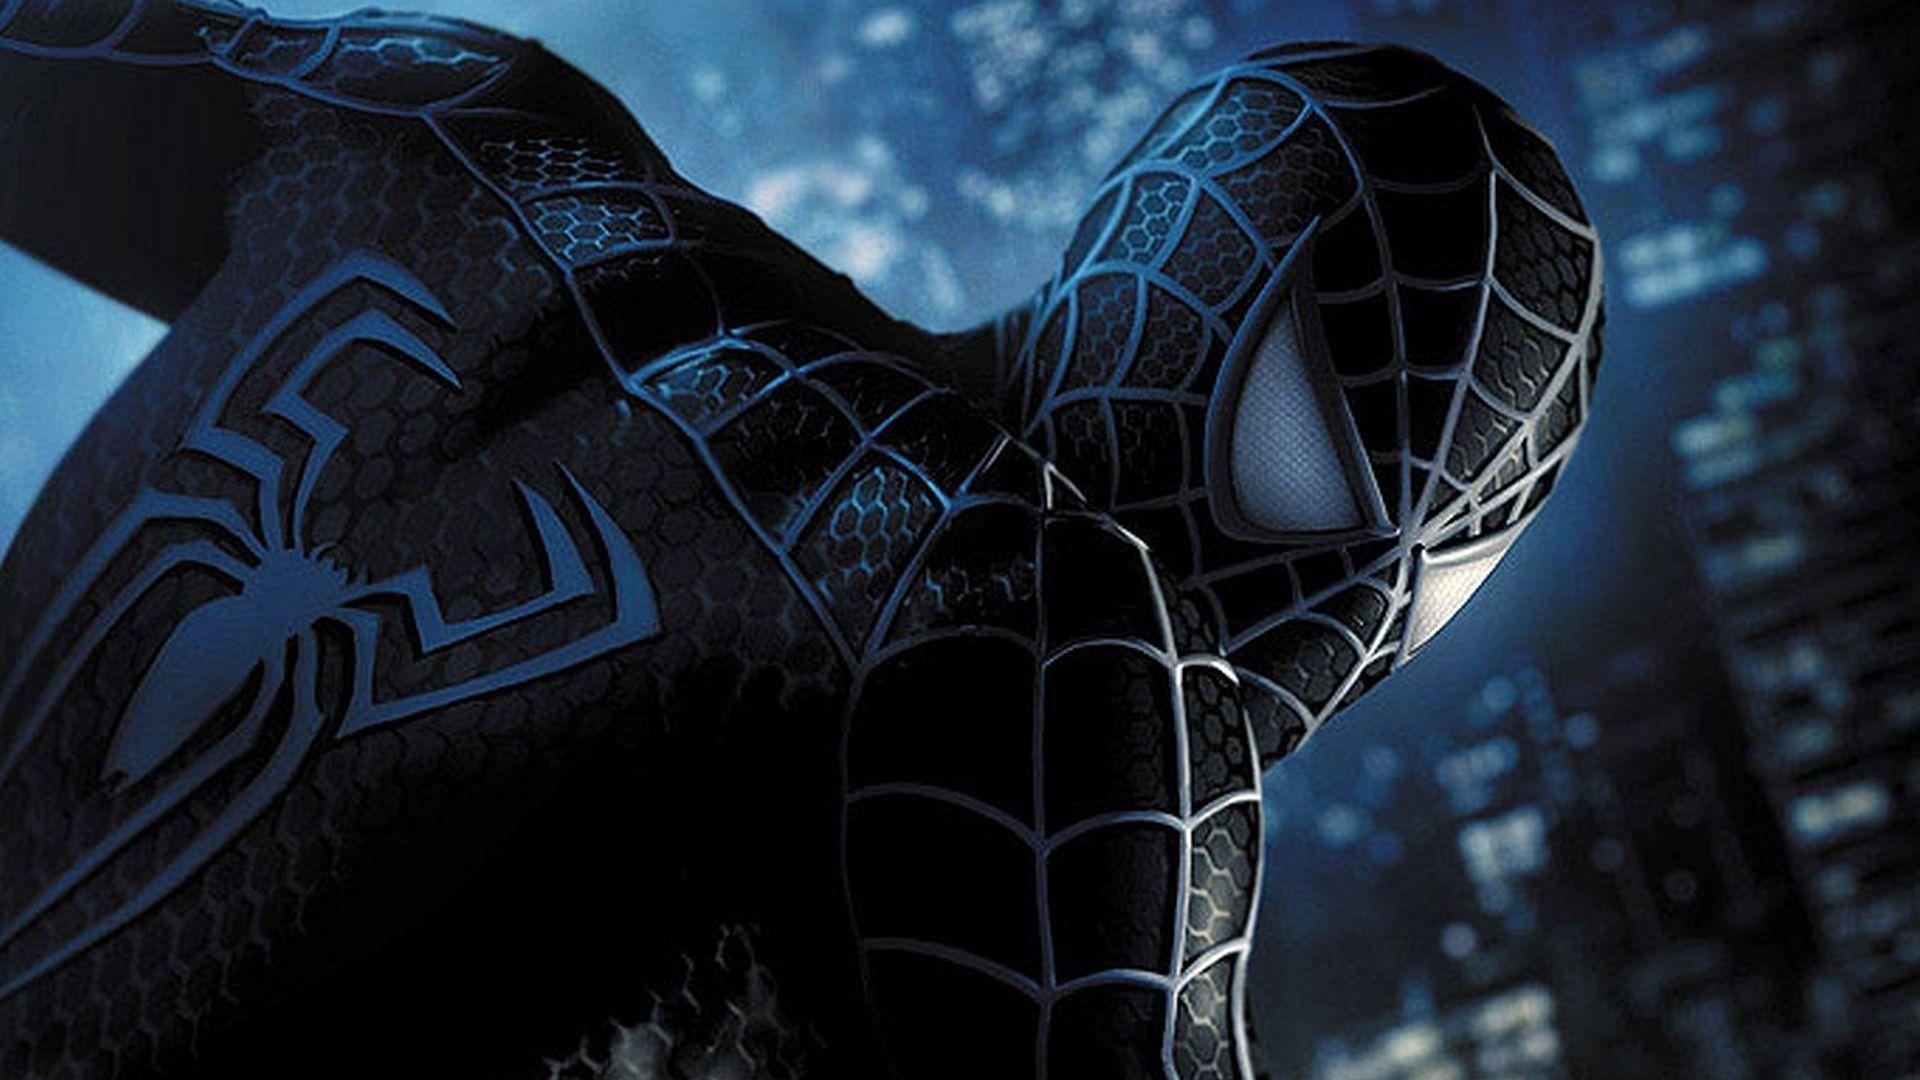 10 Latest Pictures Of The Black Spiderman FULL HD 1920×1080 For PC Desktop